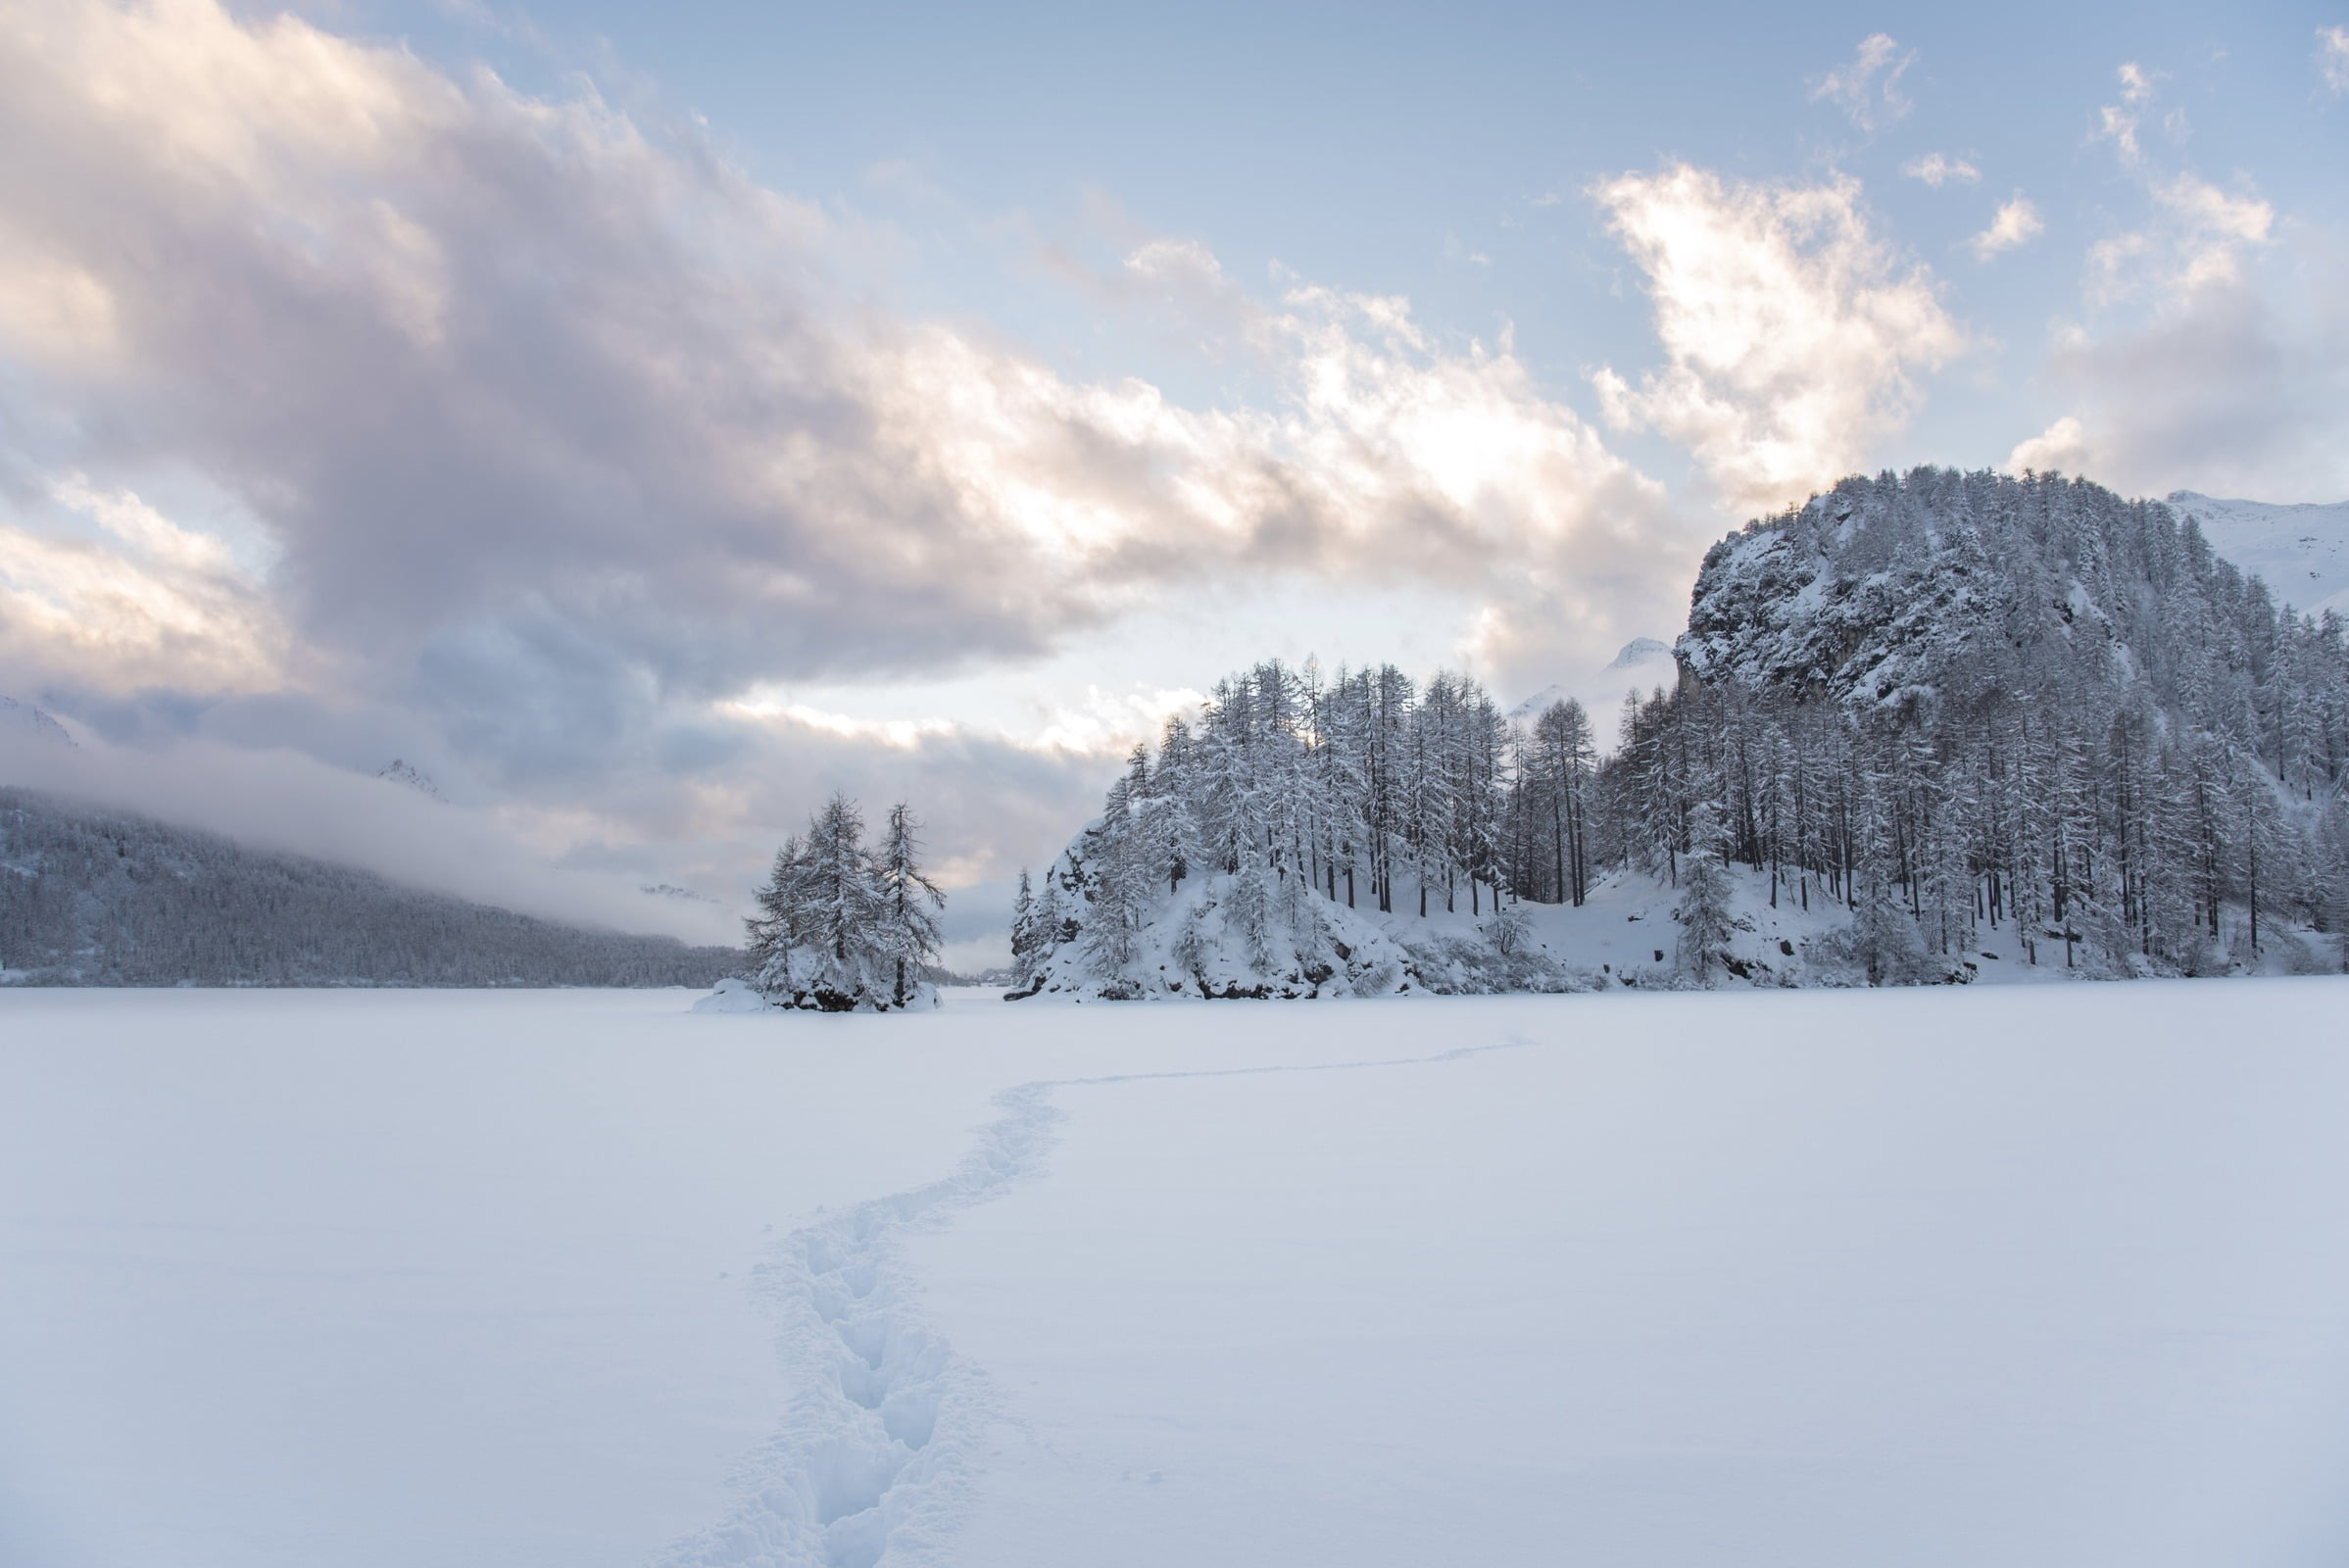 Winter hiking on the frozen Lake Sils